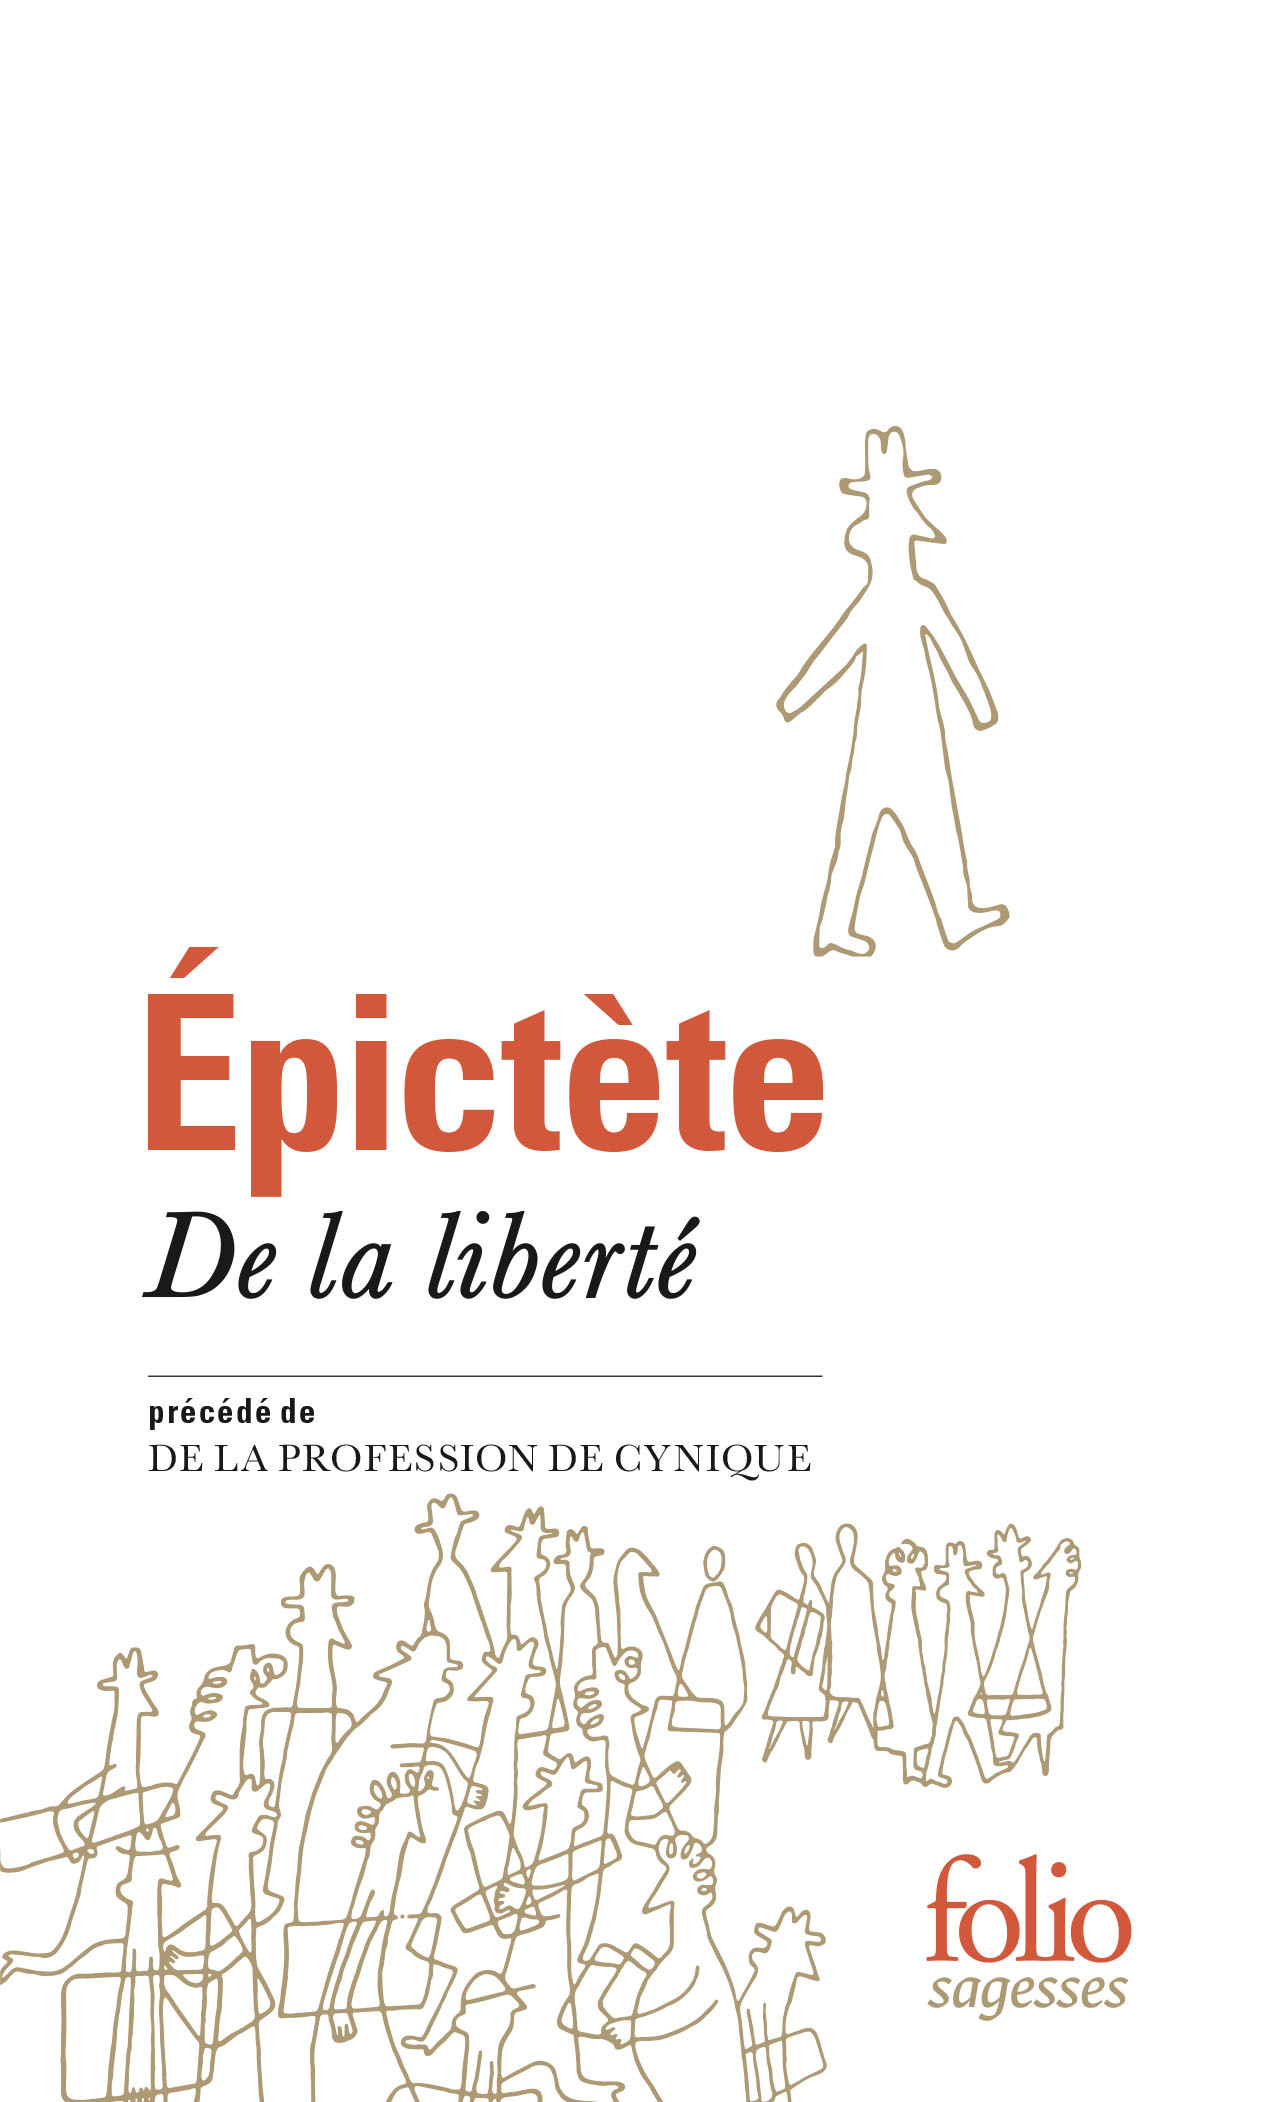 DE LA LIBERTE/DE LA PROFESSION DE CYNIQUE